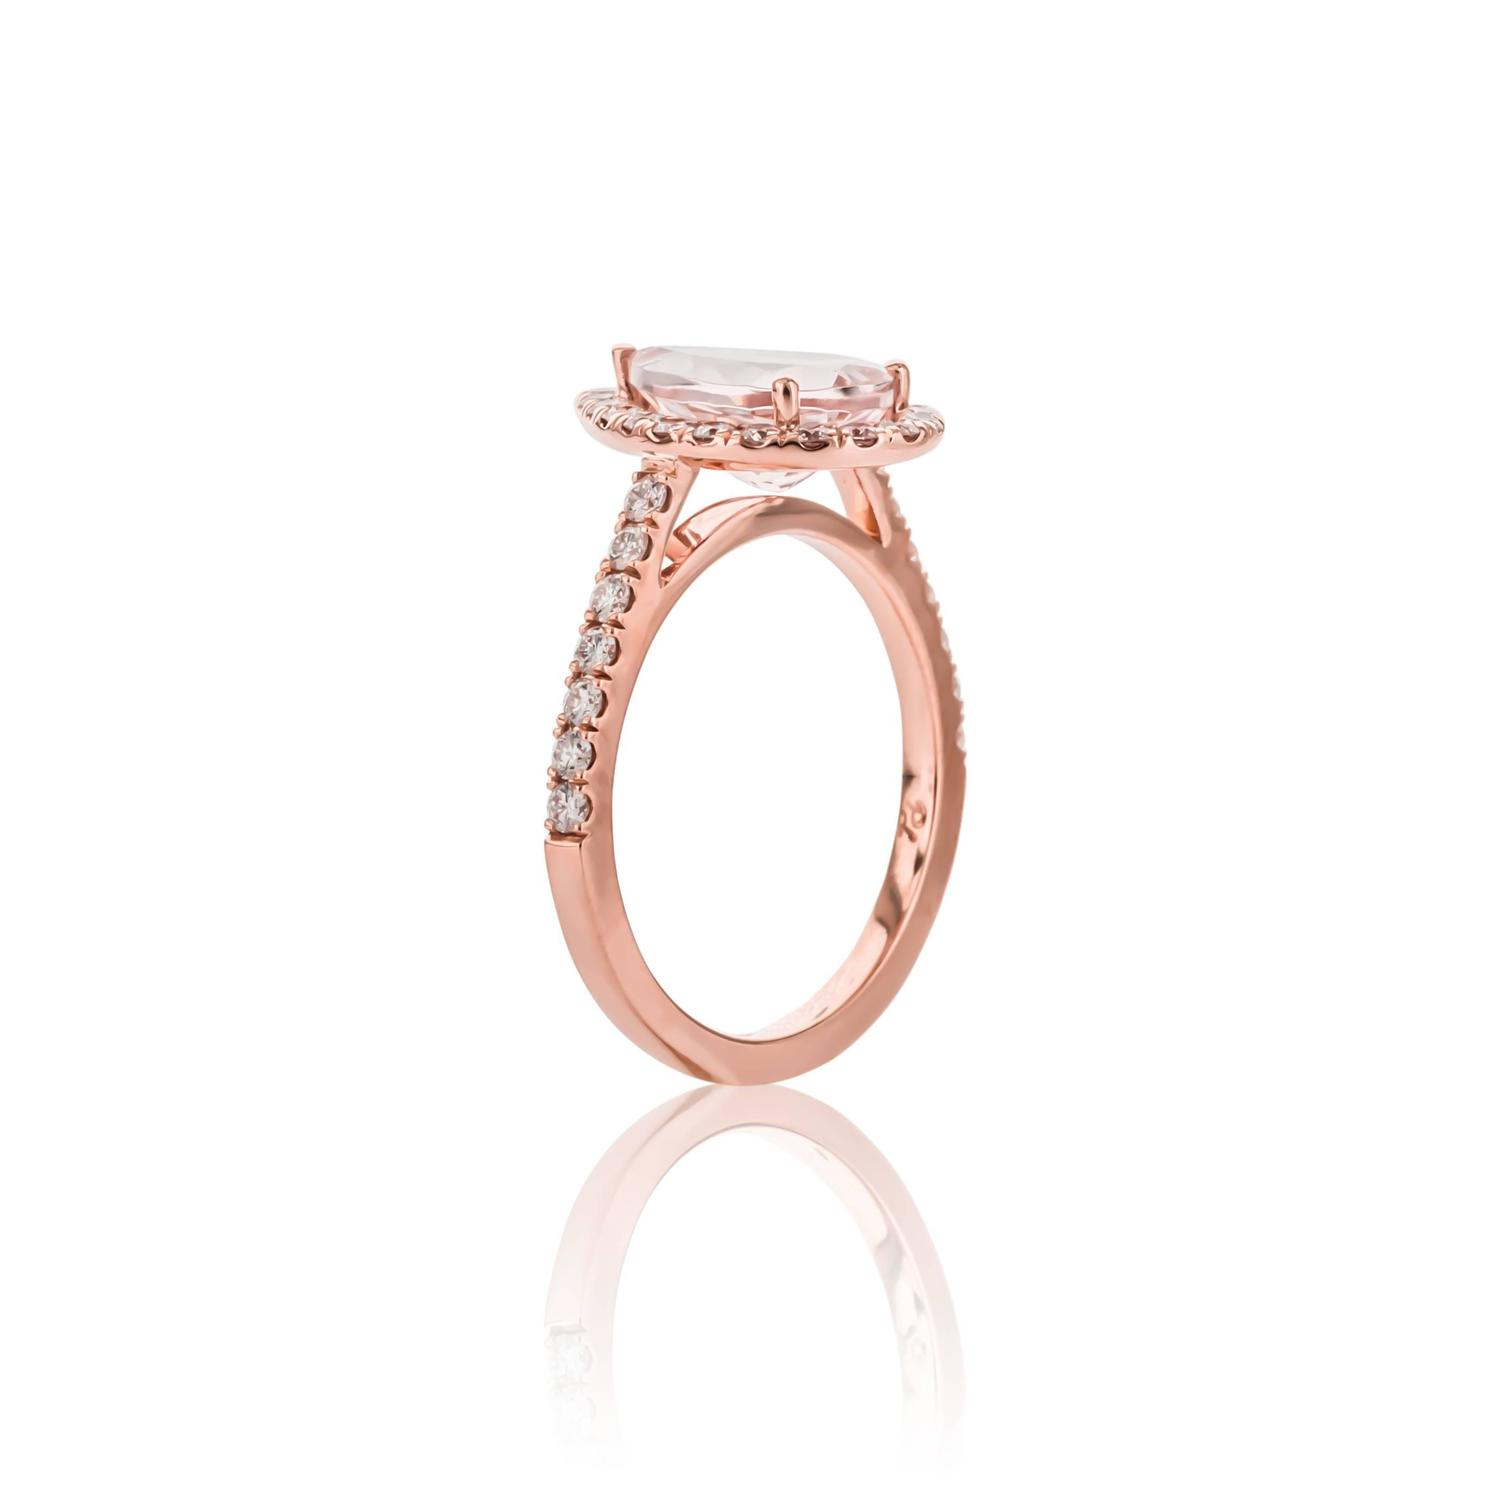 e of a Kind 1 95 Carat Morganite Diamond Gold Ring For Sale at 1stdibs